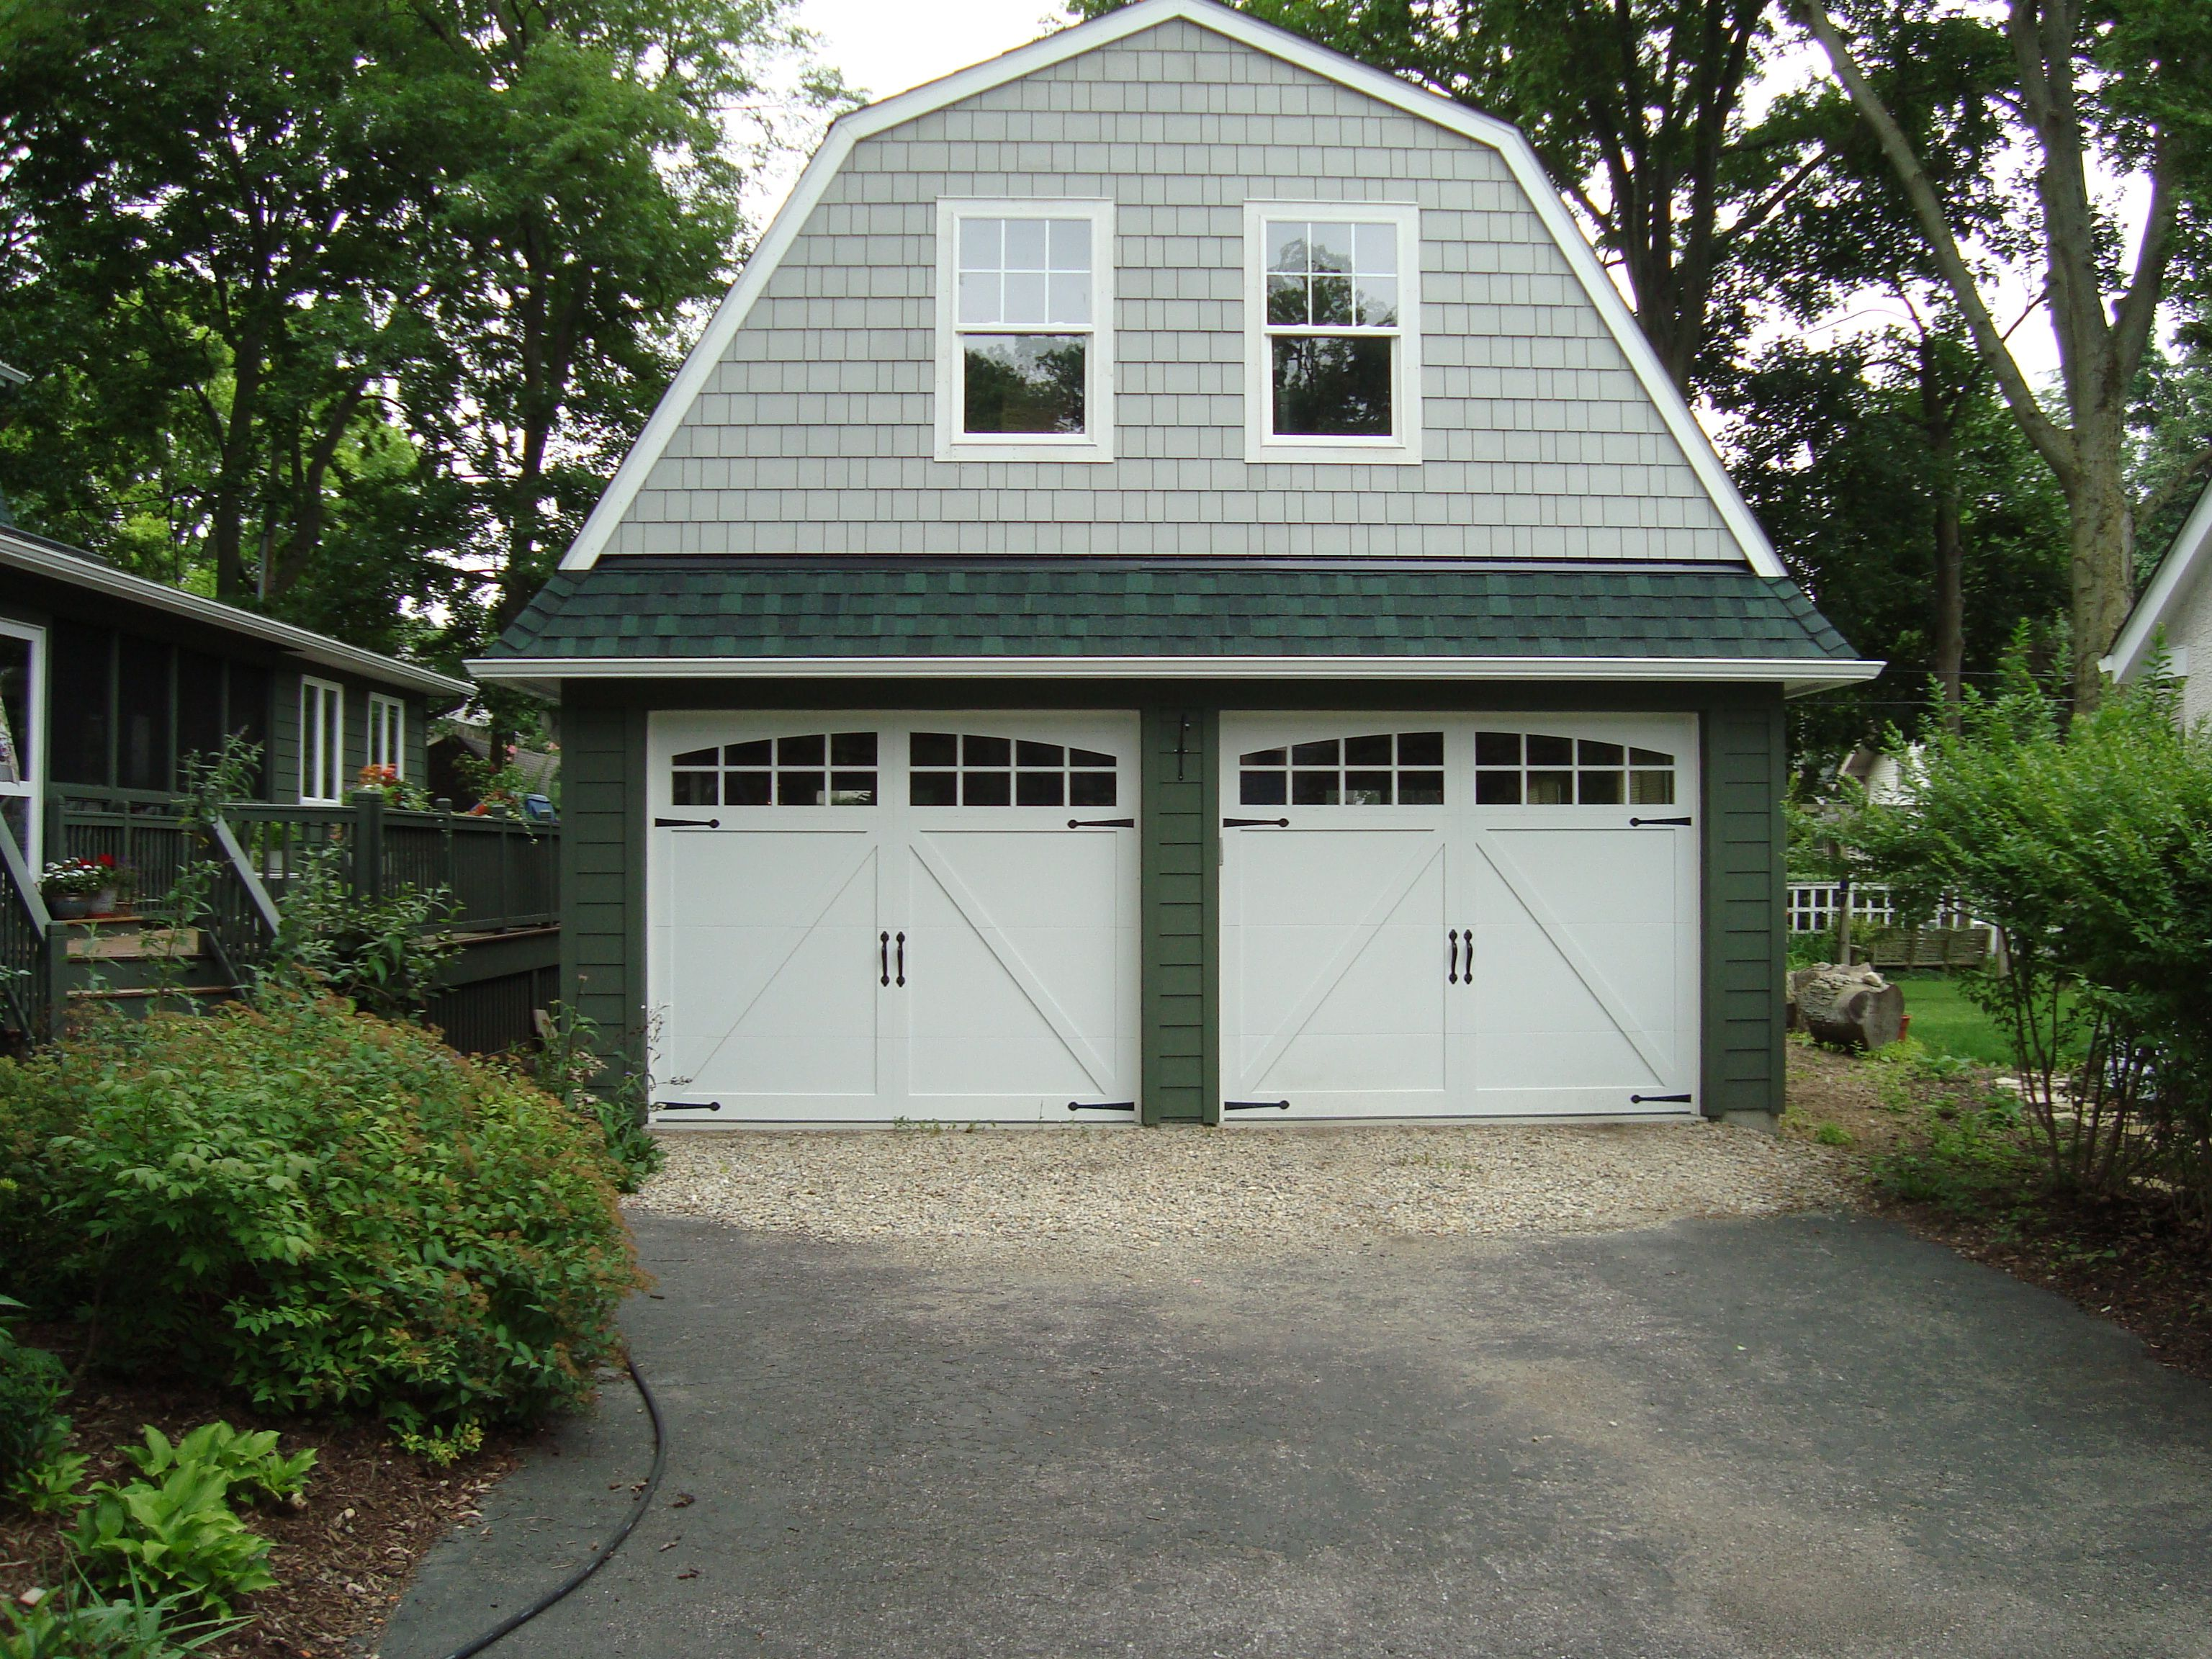 C H I 5333a White Carriage House Insulated With 2 2 Piece